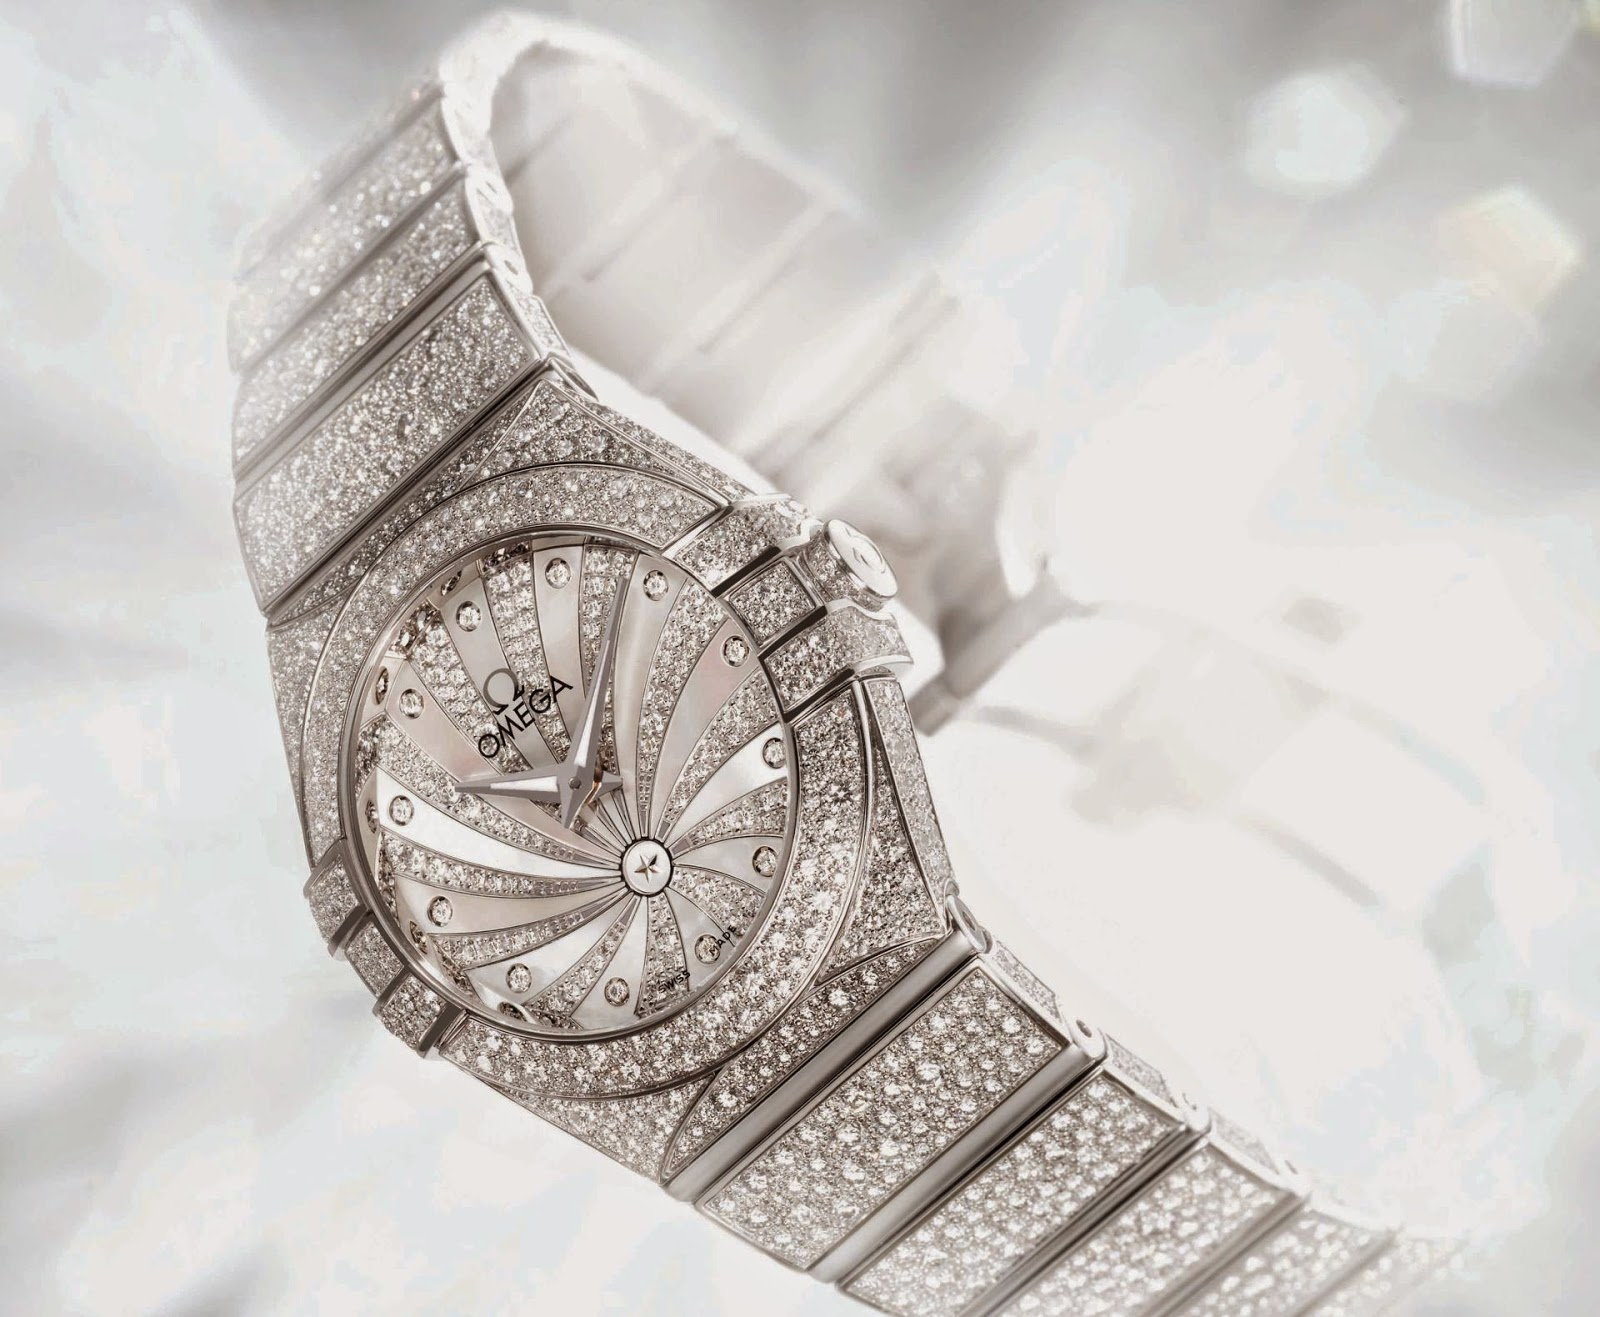 Luxury Omega Constellation Concept B watch replica